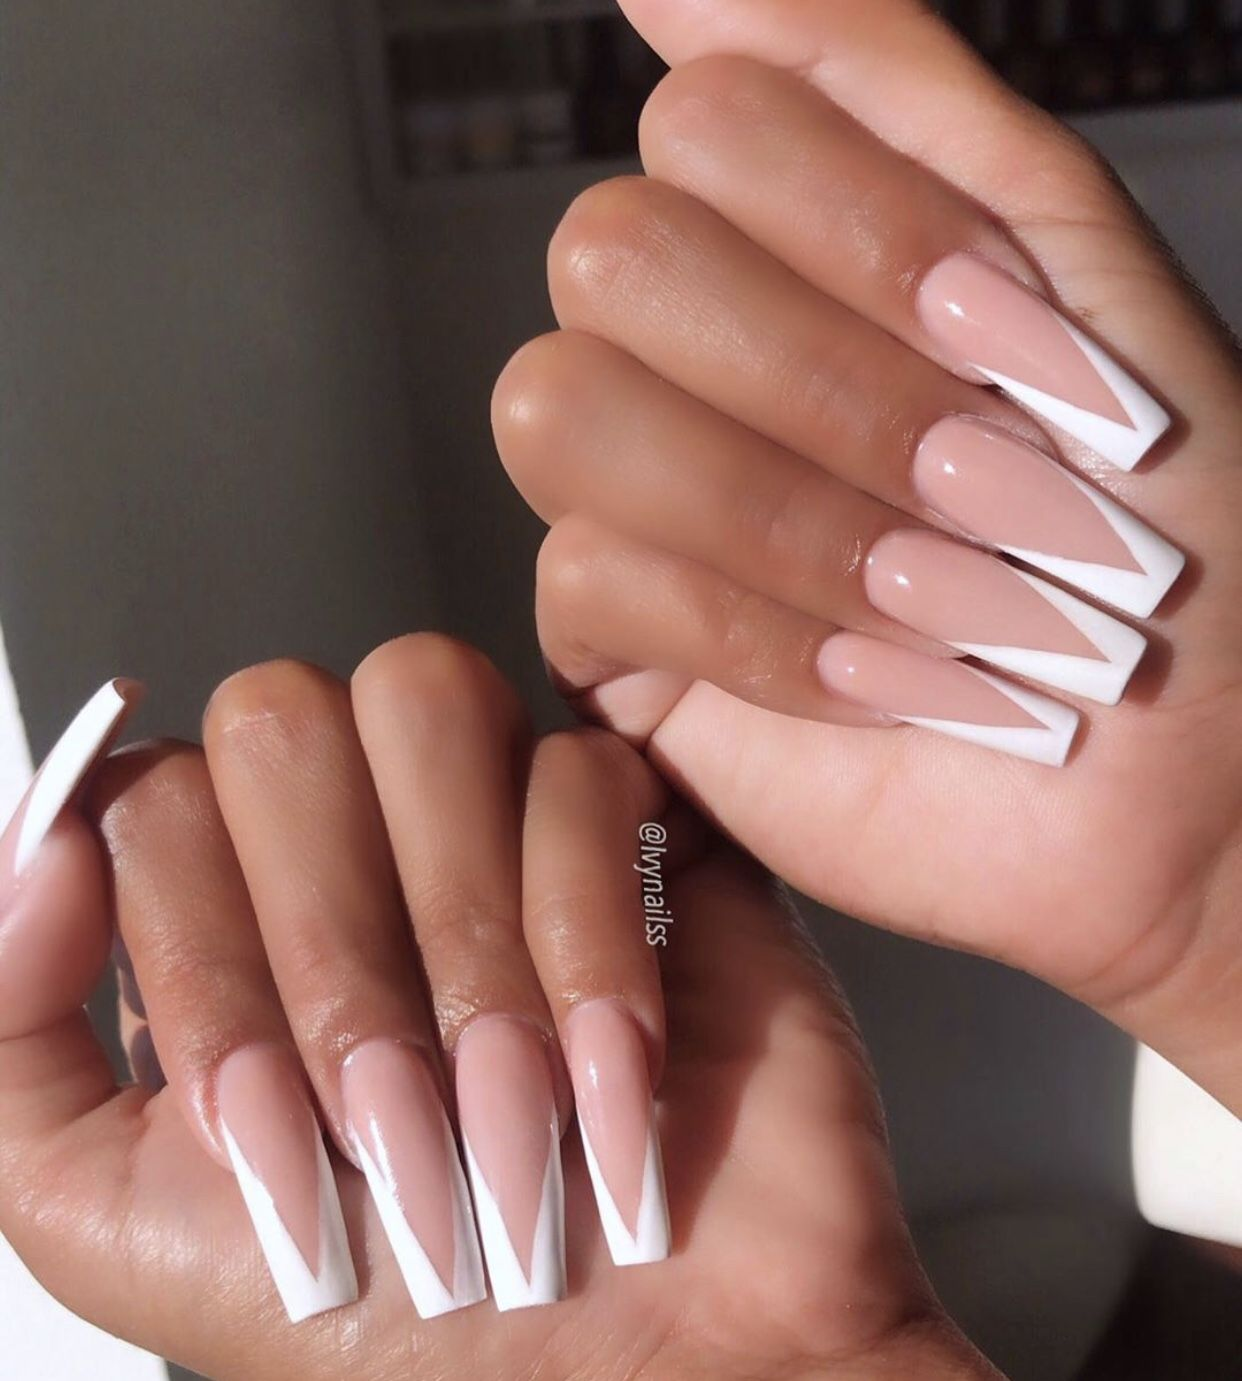 Pin By Kassy M On Nails In 2020 White Tip Acrylic Nails Long Square Acrylic Nails French Tip Acrylic Nails